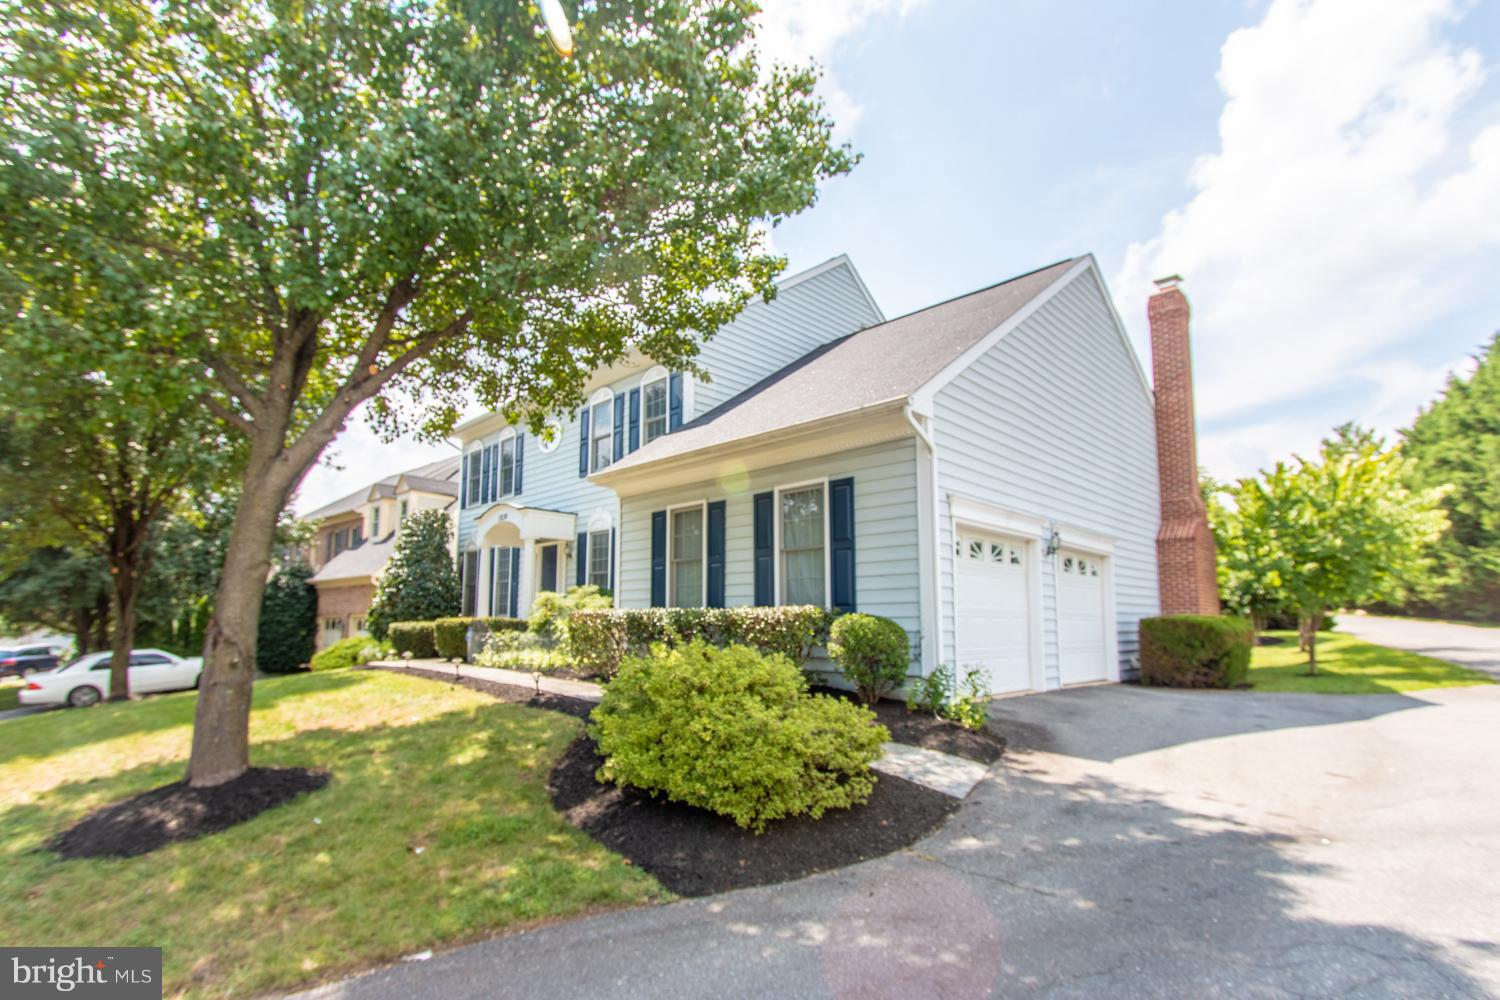 17830 CRICKET HILL DRIVE, Germantown, MD 20874